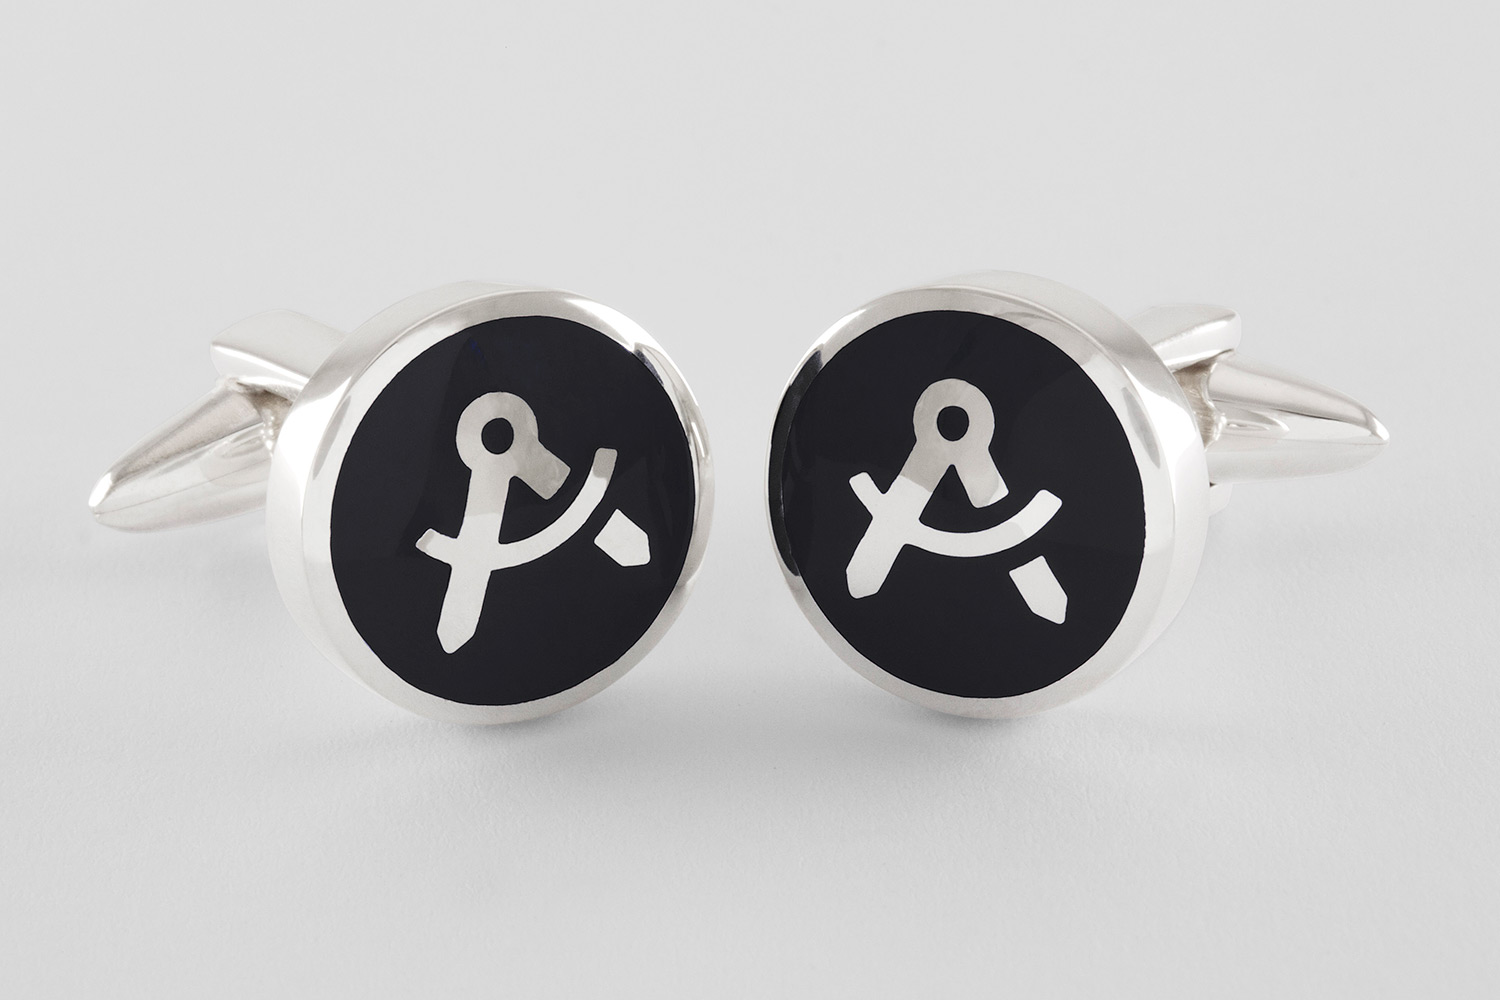 architect cufflinks